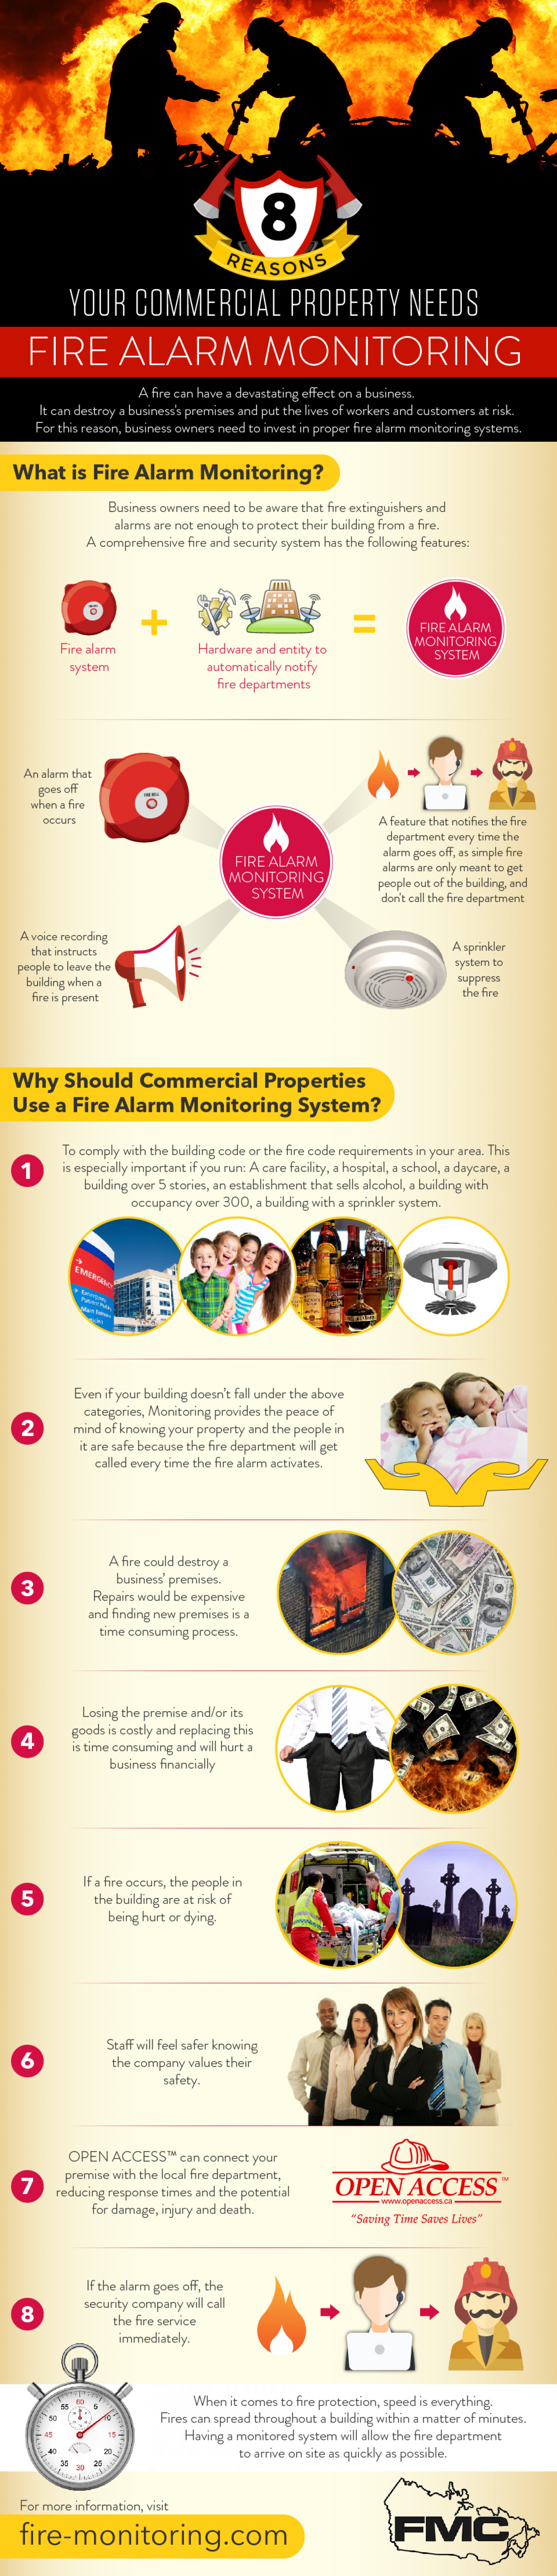 8 Reasons Your Commercial Property Needs Fire Alarm Monitorin Infographic